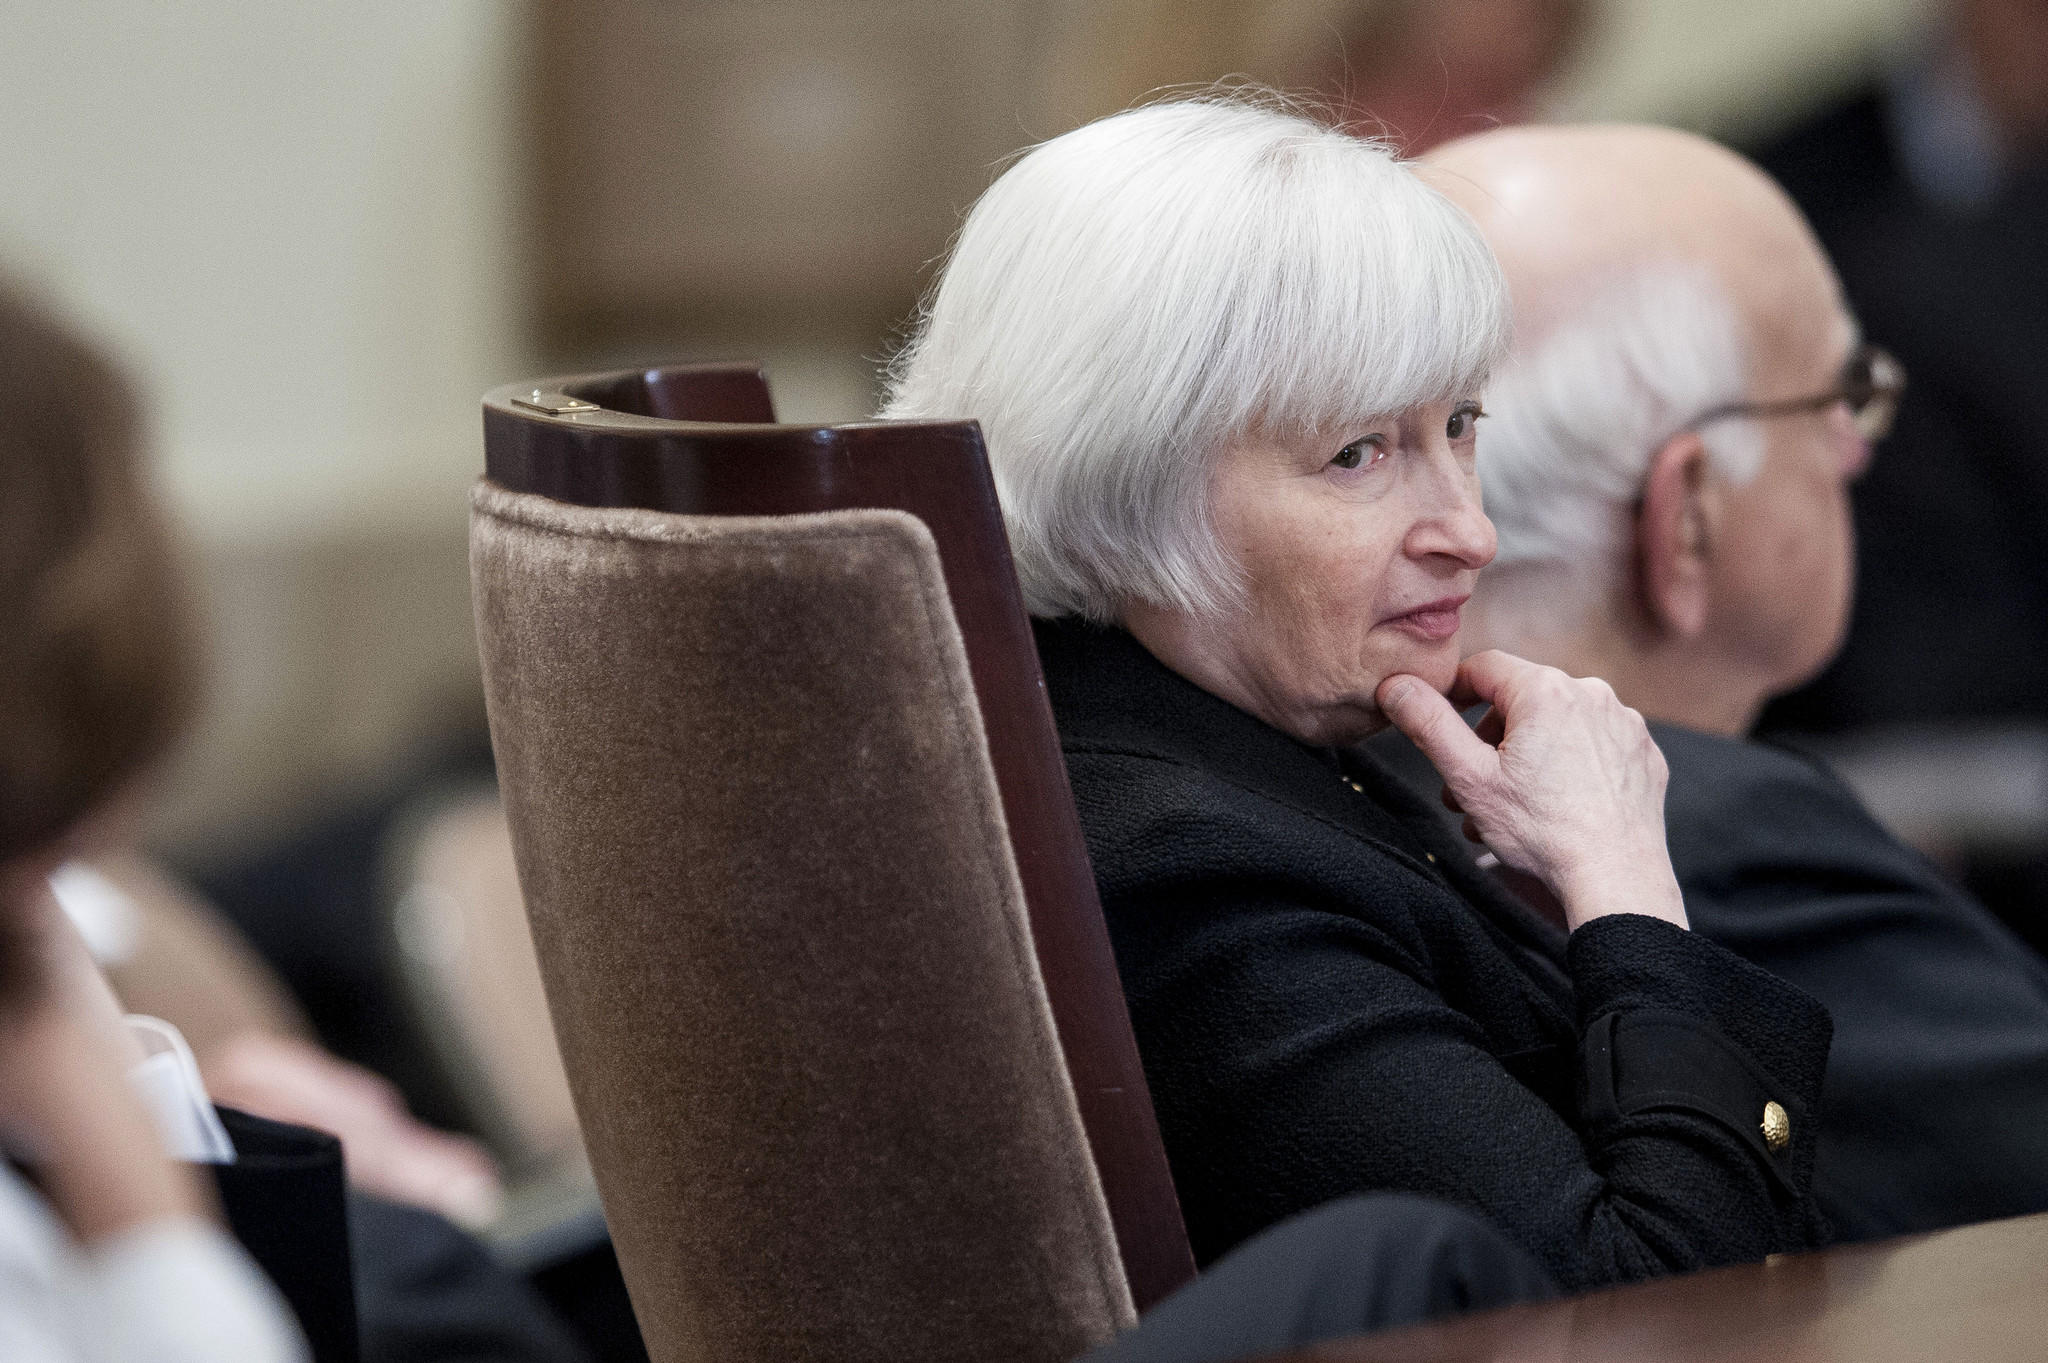 Janet Yellen, vice chairman of the U.S. Federal Reserve and Paul Volcker, former Fed chairman, attend an event commemorating the Federal Reserve Act, the legislation that created the central bank, in Washington, D.C. on Monday, Dec. 16.